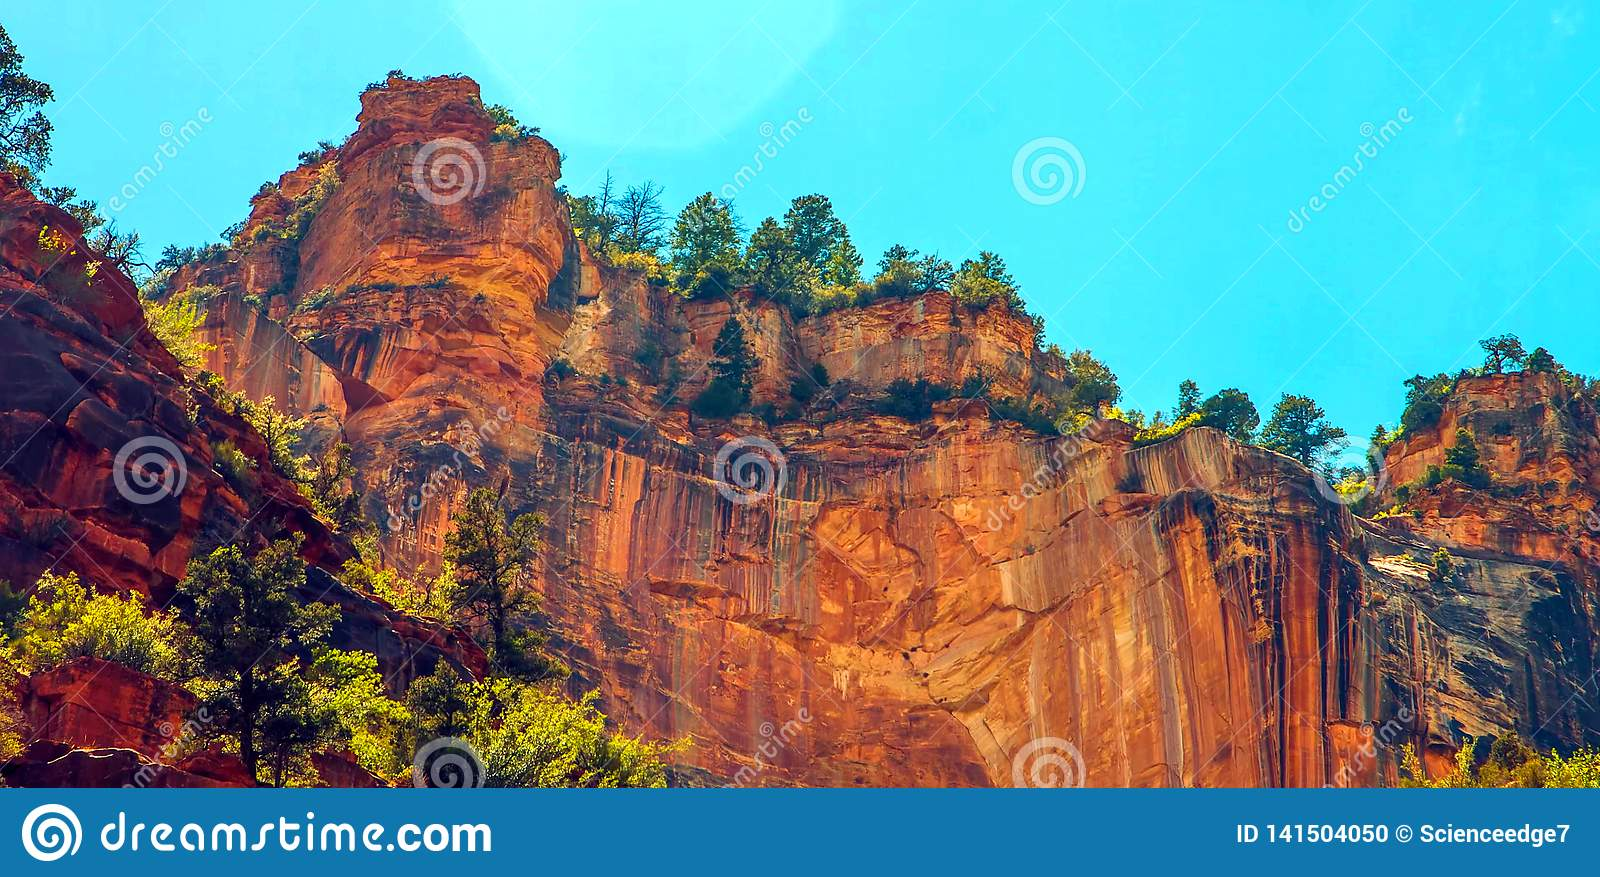 North Kaibab Trail in Grand Canyon National Park, Arizona, United States of America